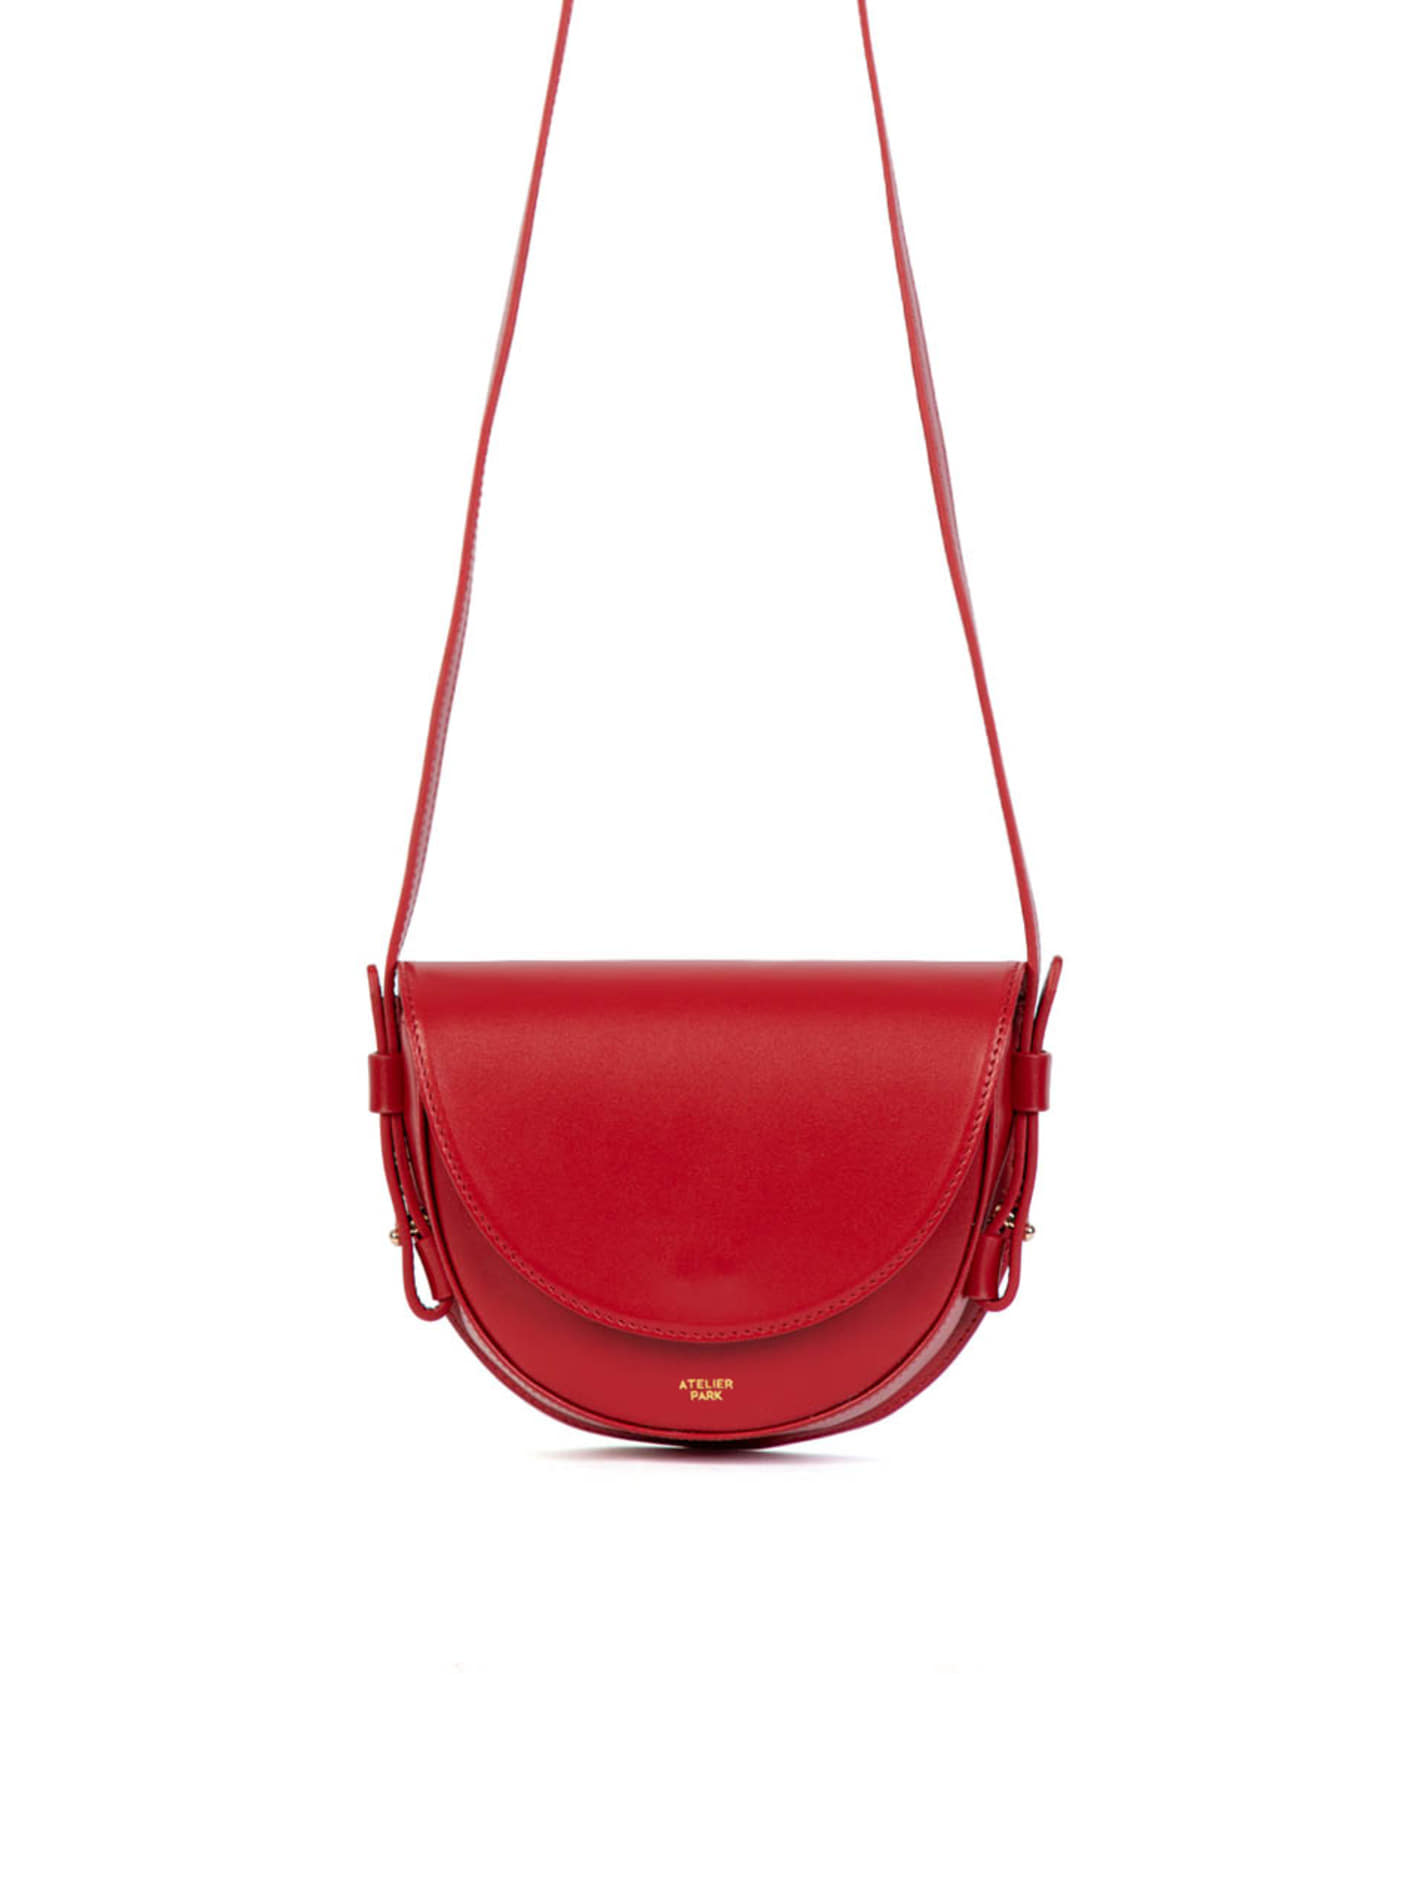 LAMI BAG _ MINI _ Deep red